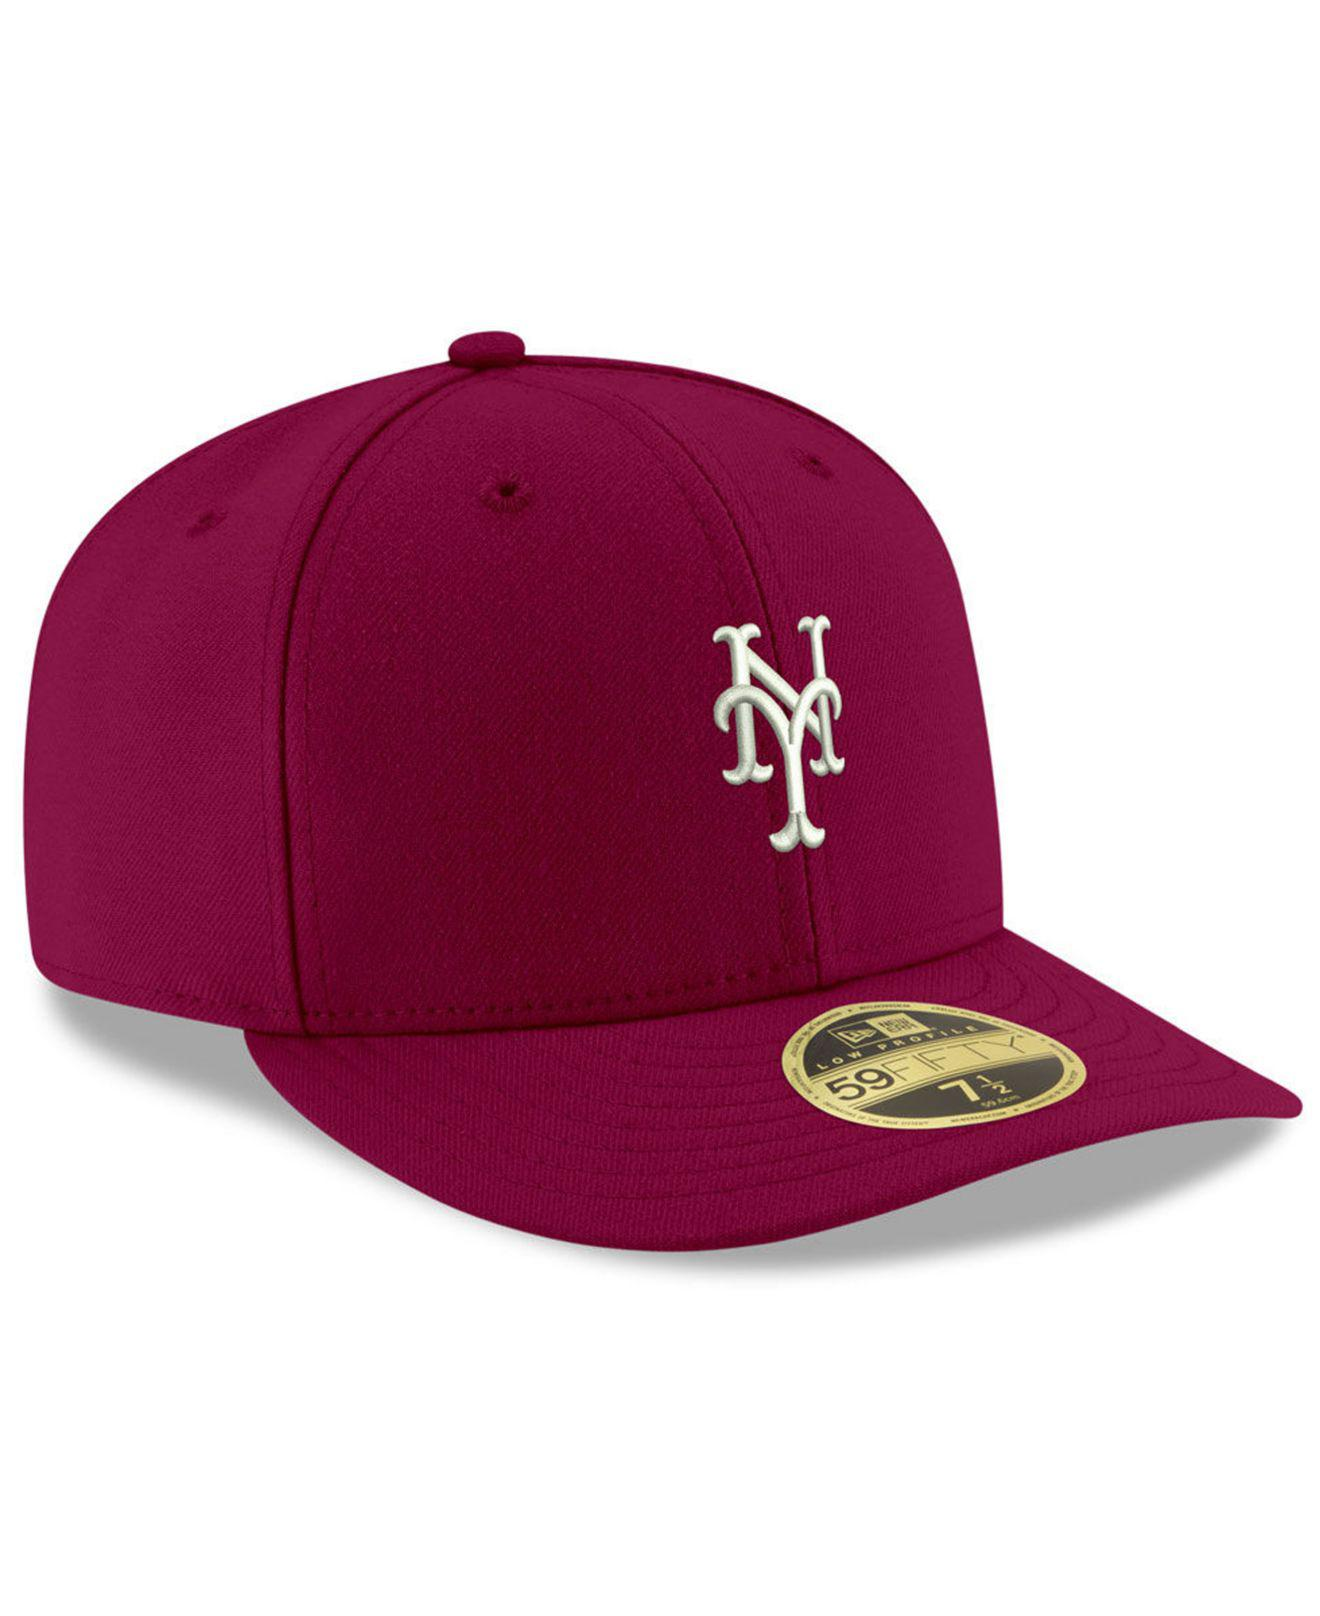 Lyst - KTZ New York Mets Low Profile C-dub 59fifty Fitted Cap in Red ... 329e4d726b94